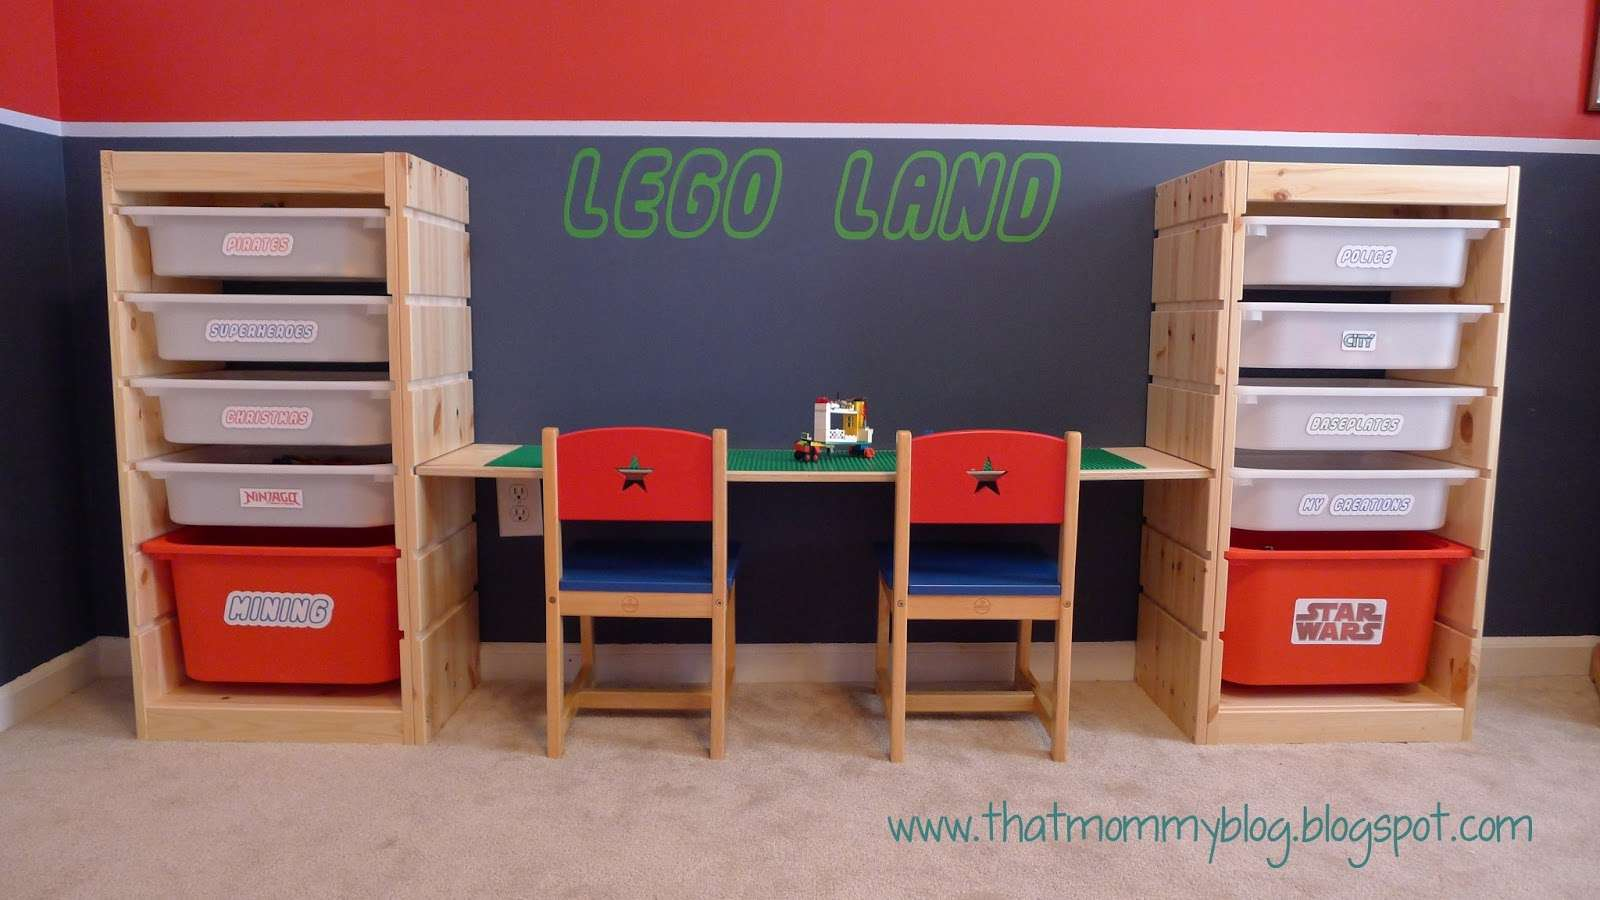 A Lego table with storage drawers on each side